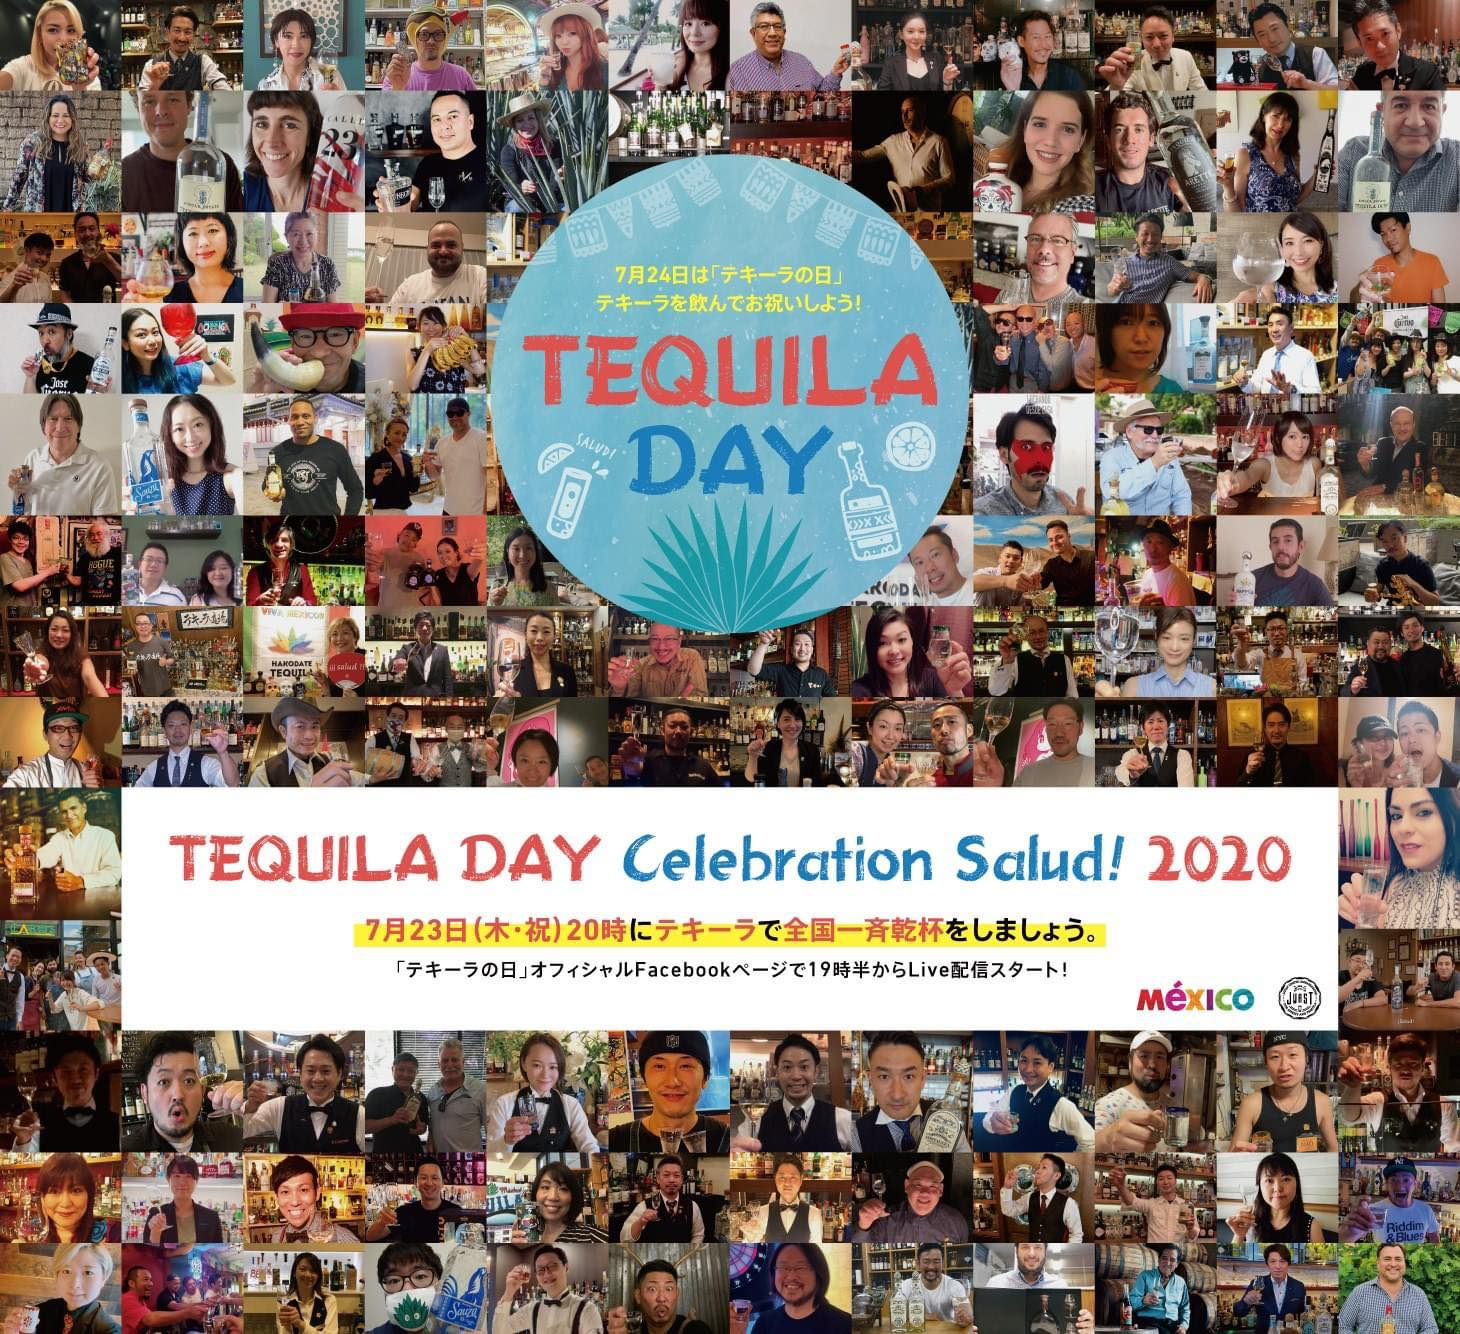 TEQUILA DAY Celebration Salud 2020